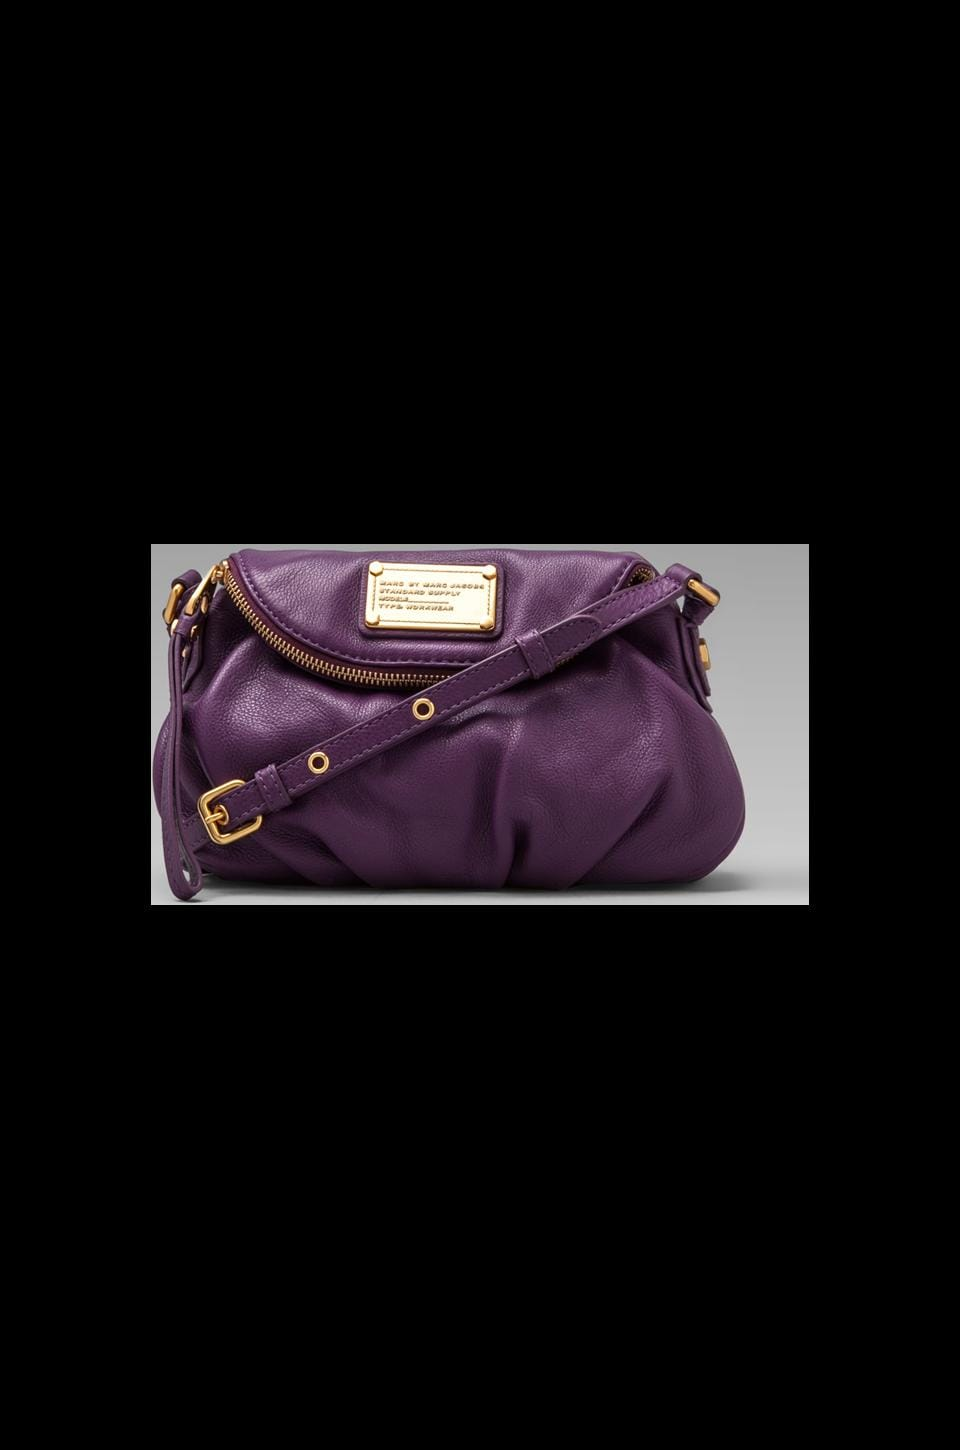 Marc by Marc Jacobs Classic Q Mini Natasha Crossbody in Pansy Purple